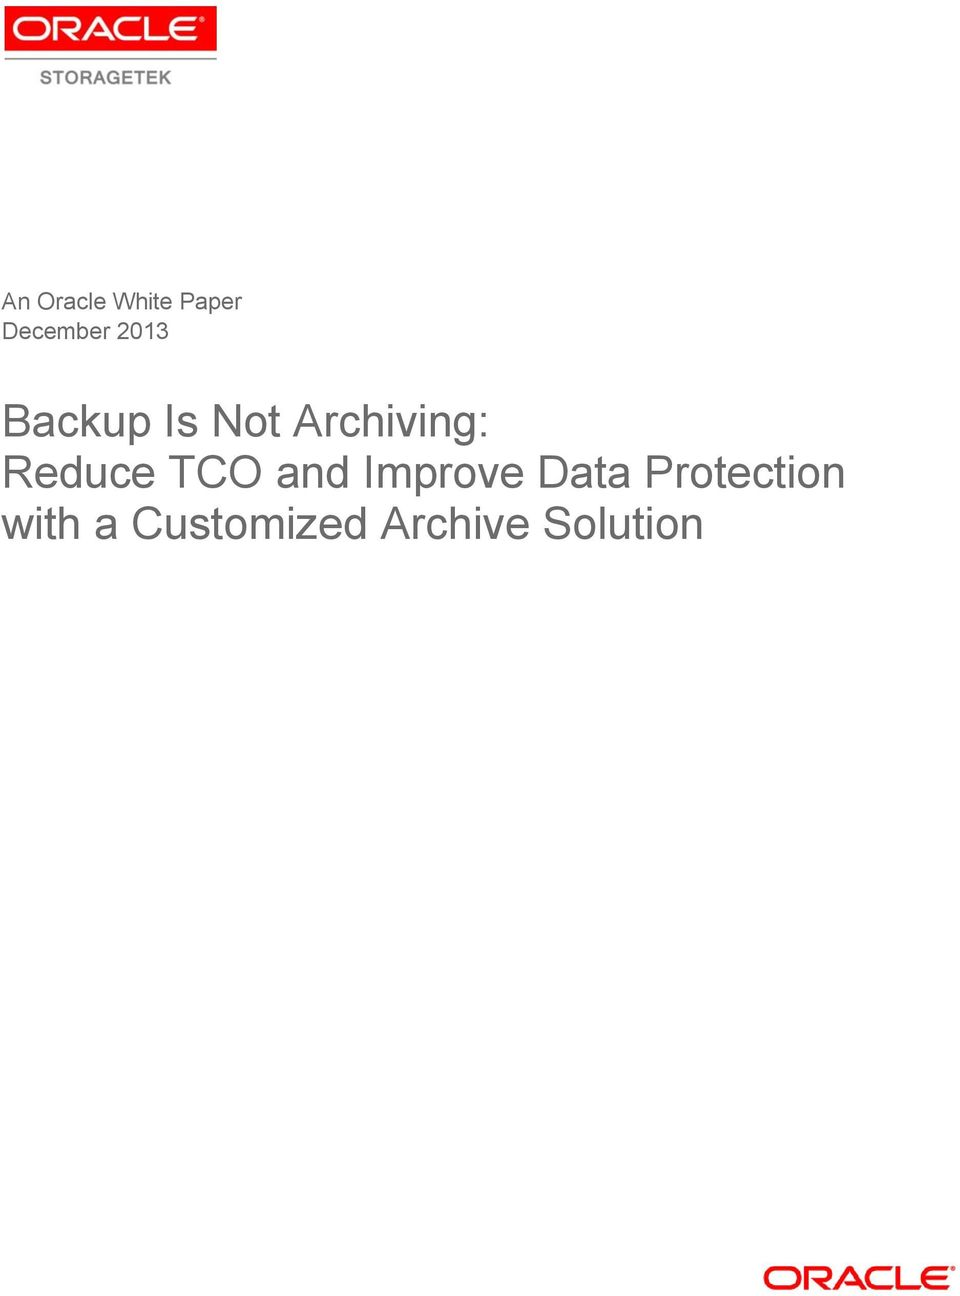 Reduce TCO and Improve Data